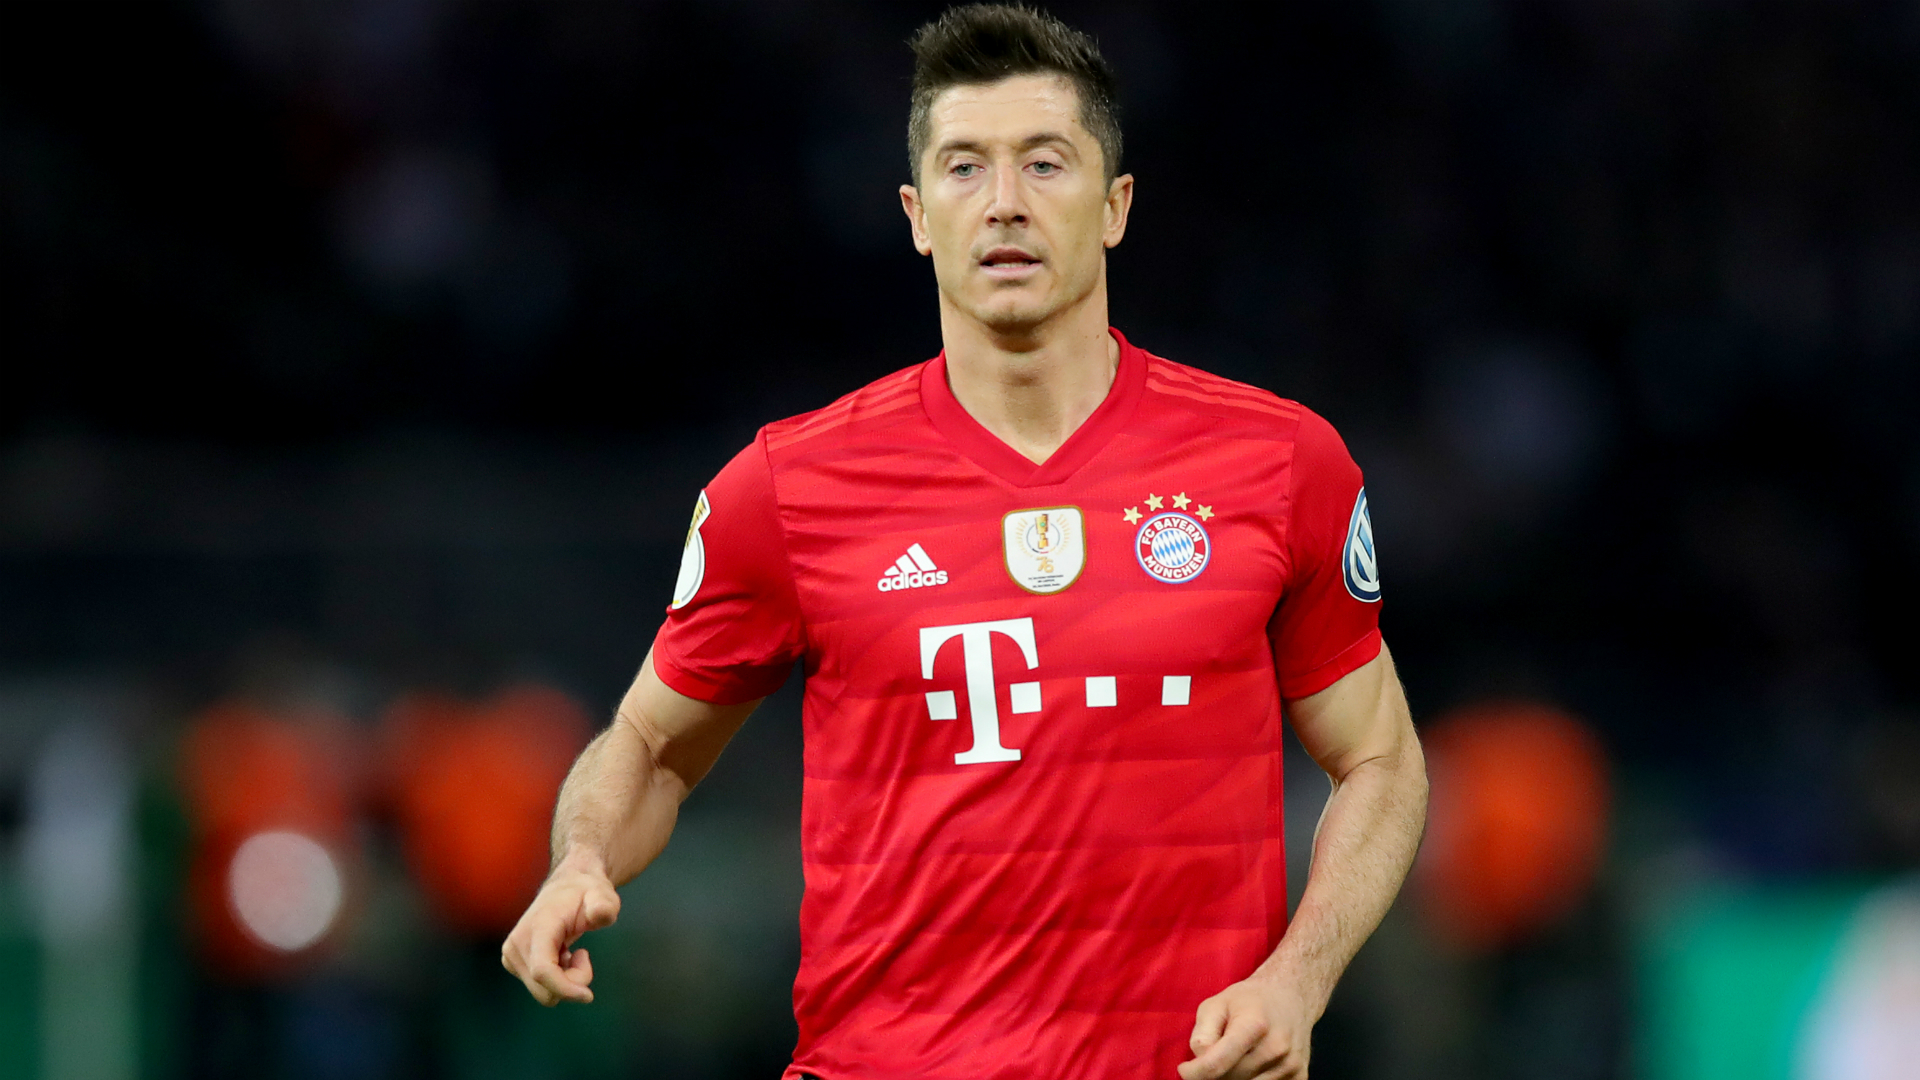 'Difficult for Bayern Munich to win UCL without new signings': Robert Lewandowski